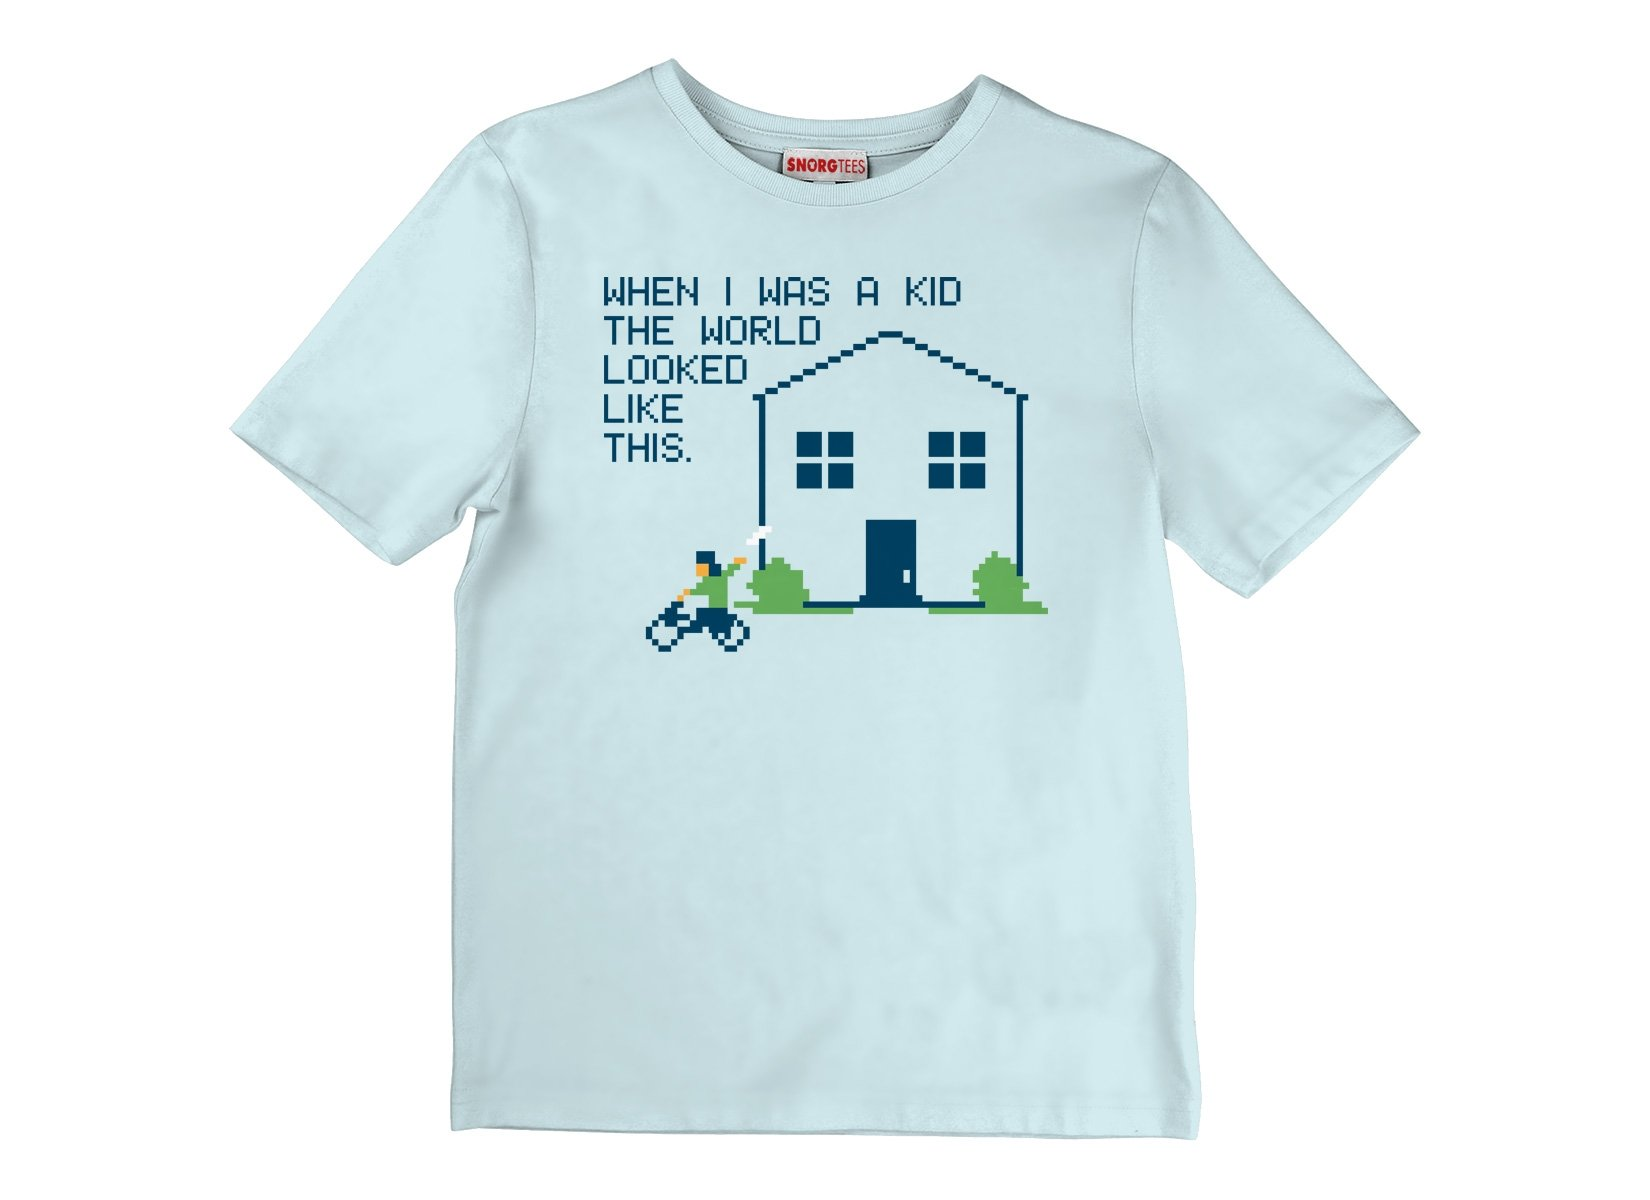 When I Was A Kid The World on Kids T-Shirt